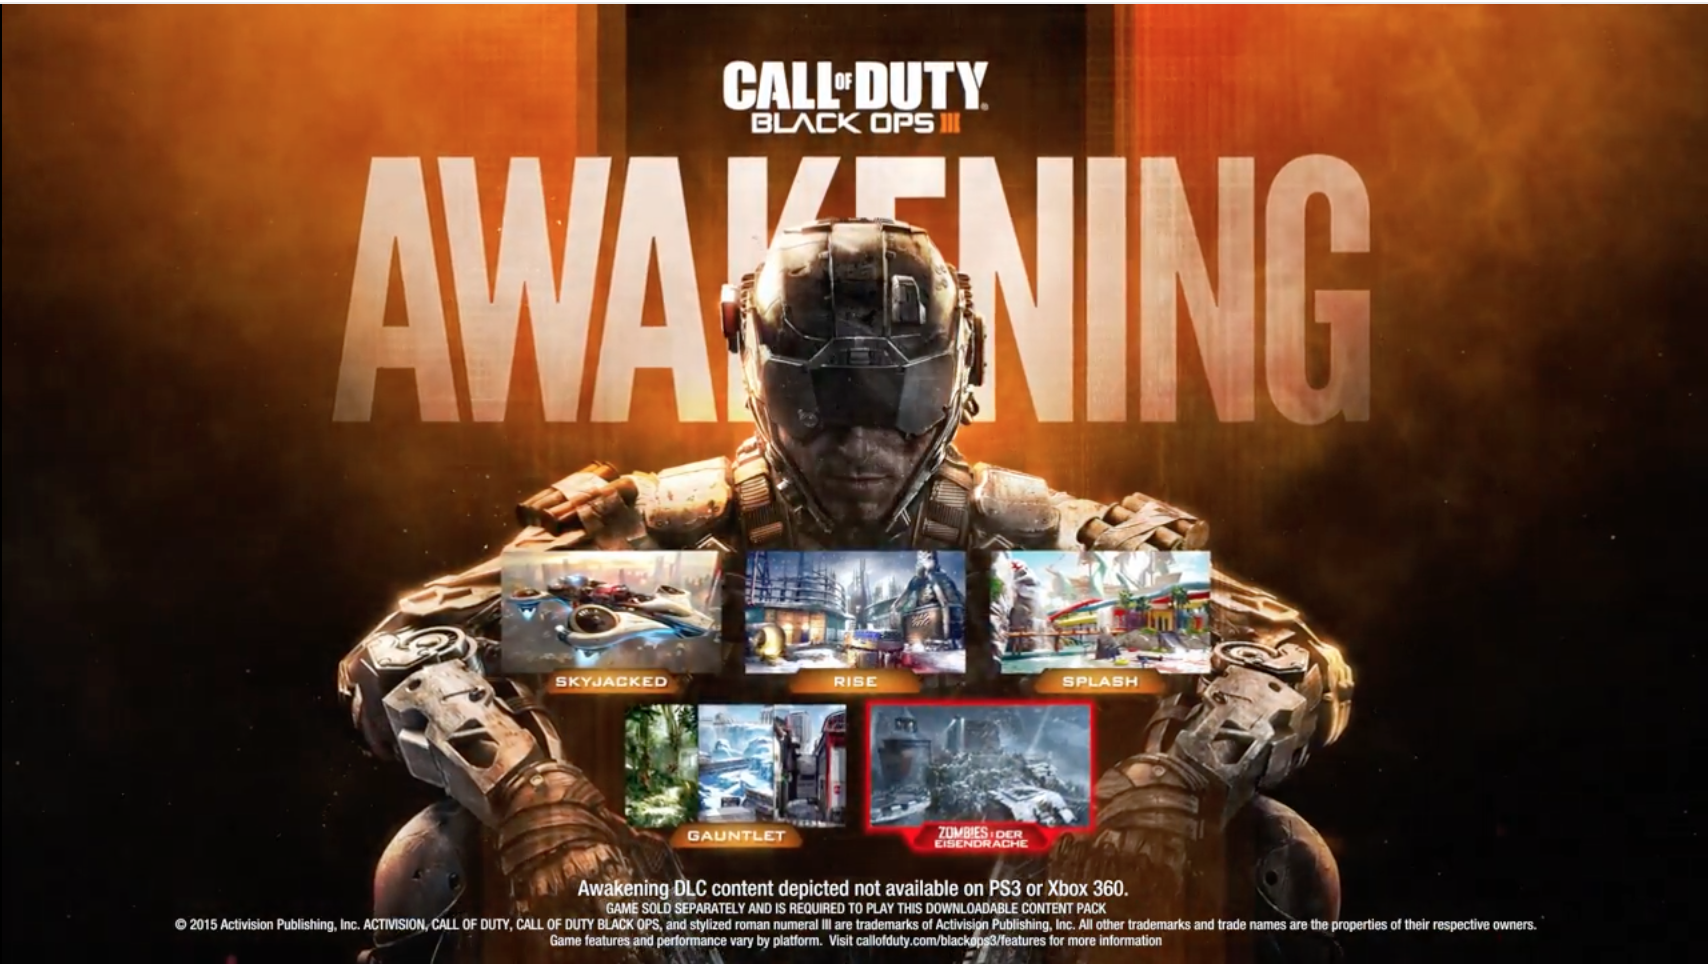 call of duty black ops dlc maps with Black Ops 3 Awakening Dlc Will Not Be Available On Ps3 Or Xbox 360 on REVELATIONS COD BO3 ZOMBIES Fanmade Wallpaper 622490353 likewise Call Of Duty Wwii Dlc 1 The Resistance together with Black Ops 3 Awakening Dlc Will Not Be Available On Ps3 Or Xbox 360 furthermore 1302 Buy Key Steam Call Of Duty Black Ops Iii Nuketown likewise Call Duty Wwii Aachen Multiplayer Map Flythrough.